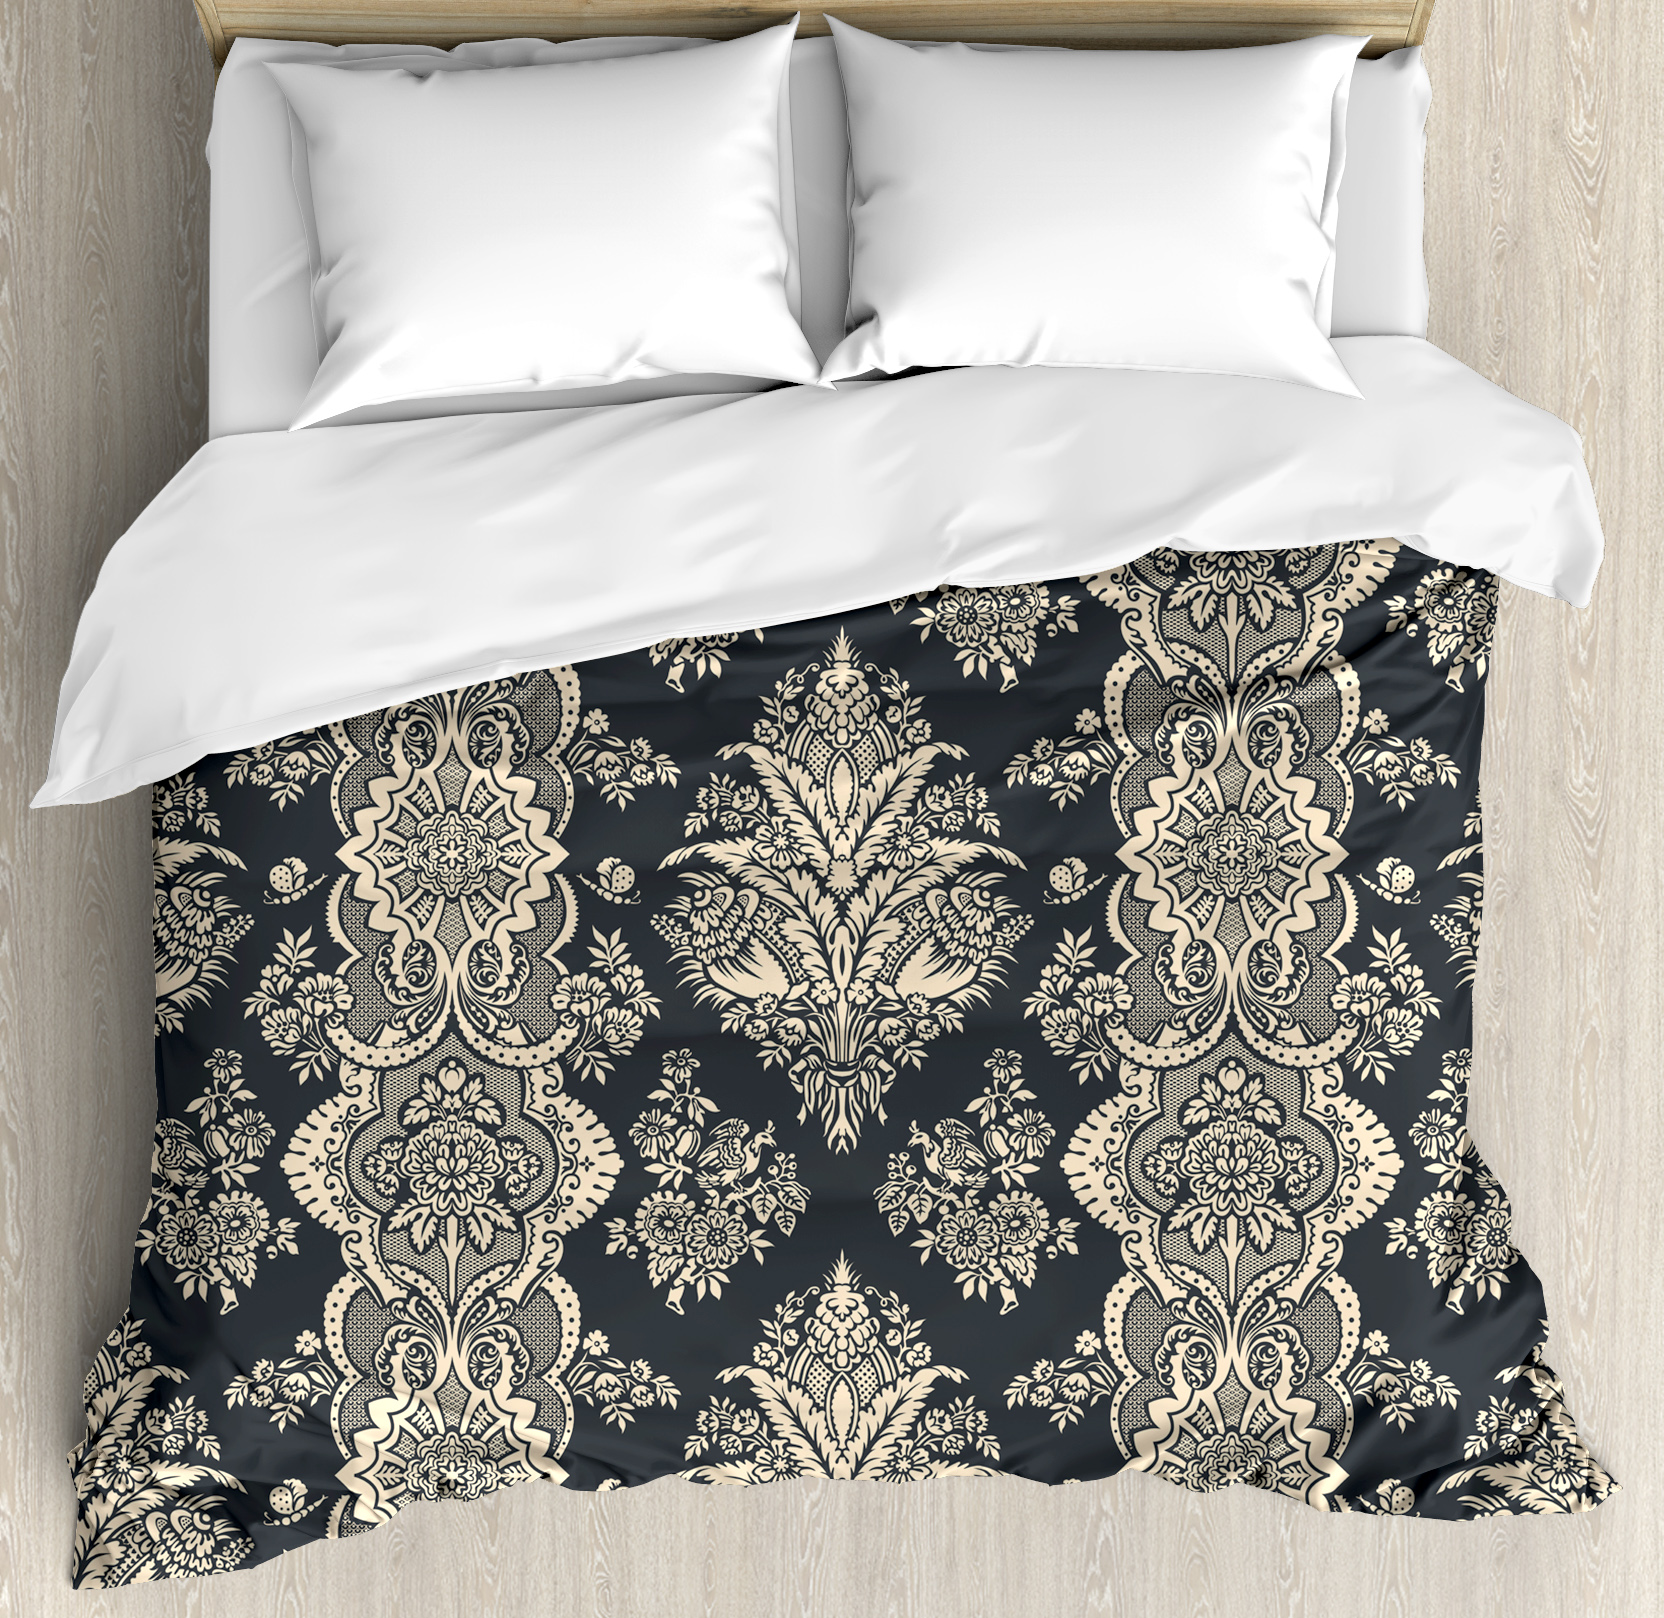 Damask Duvet Cover Set, Victorian Style Baroque Classic Pattern with Ornamental Floral Leaves Image, Decorative Bedding Set with Pillow Shams, Charcoal Grey Cream, by Ambesonne